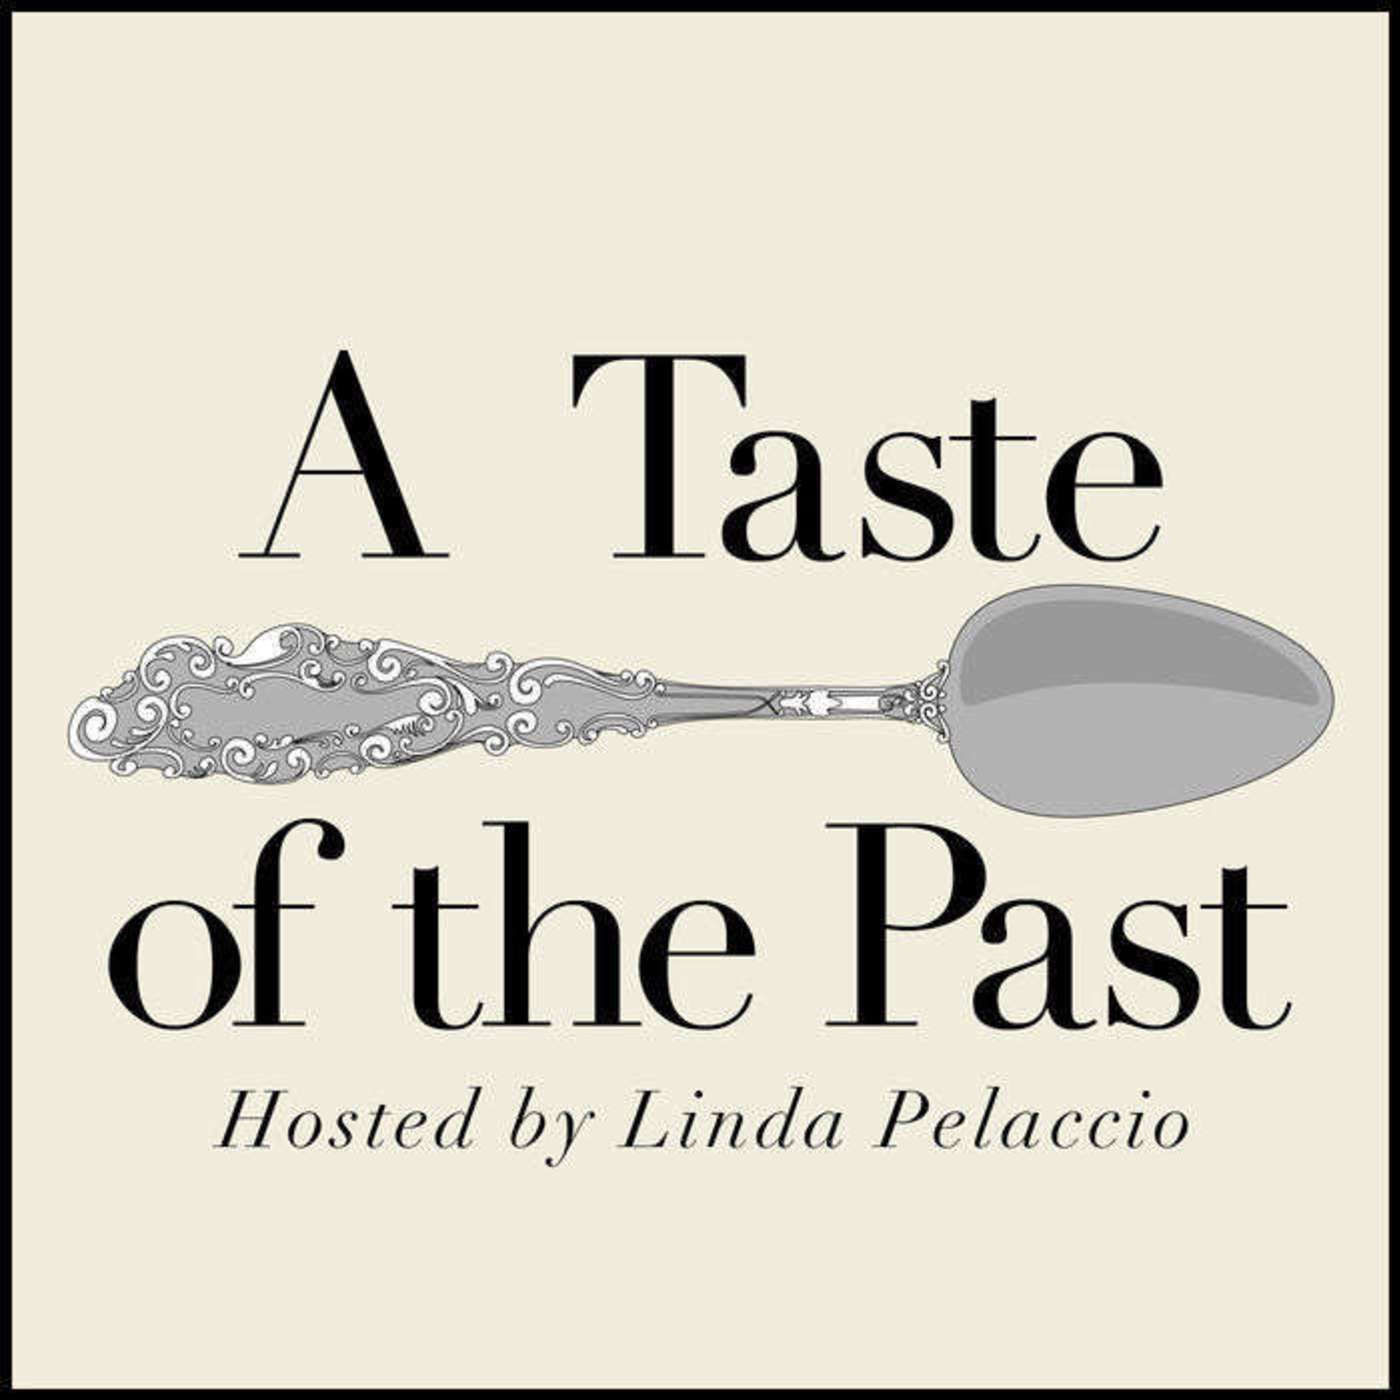 Episode 110: The Rise and Fall of Tuna